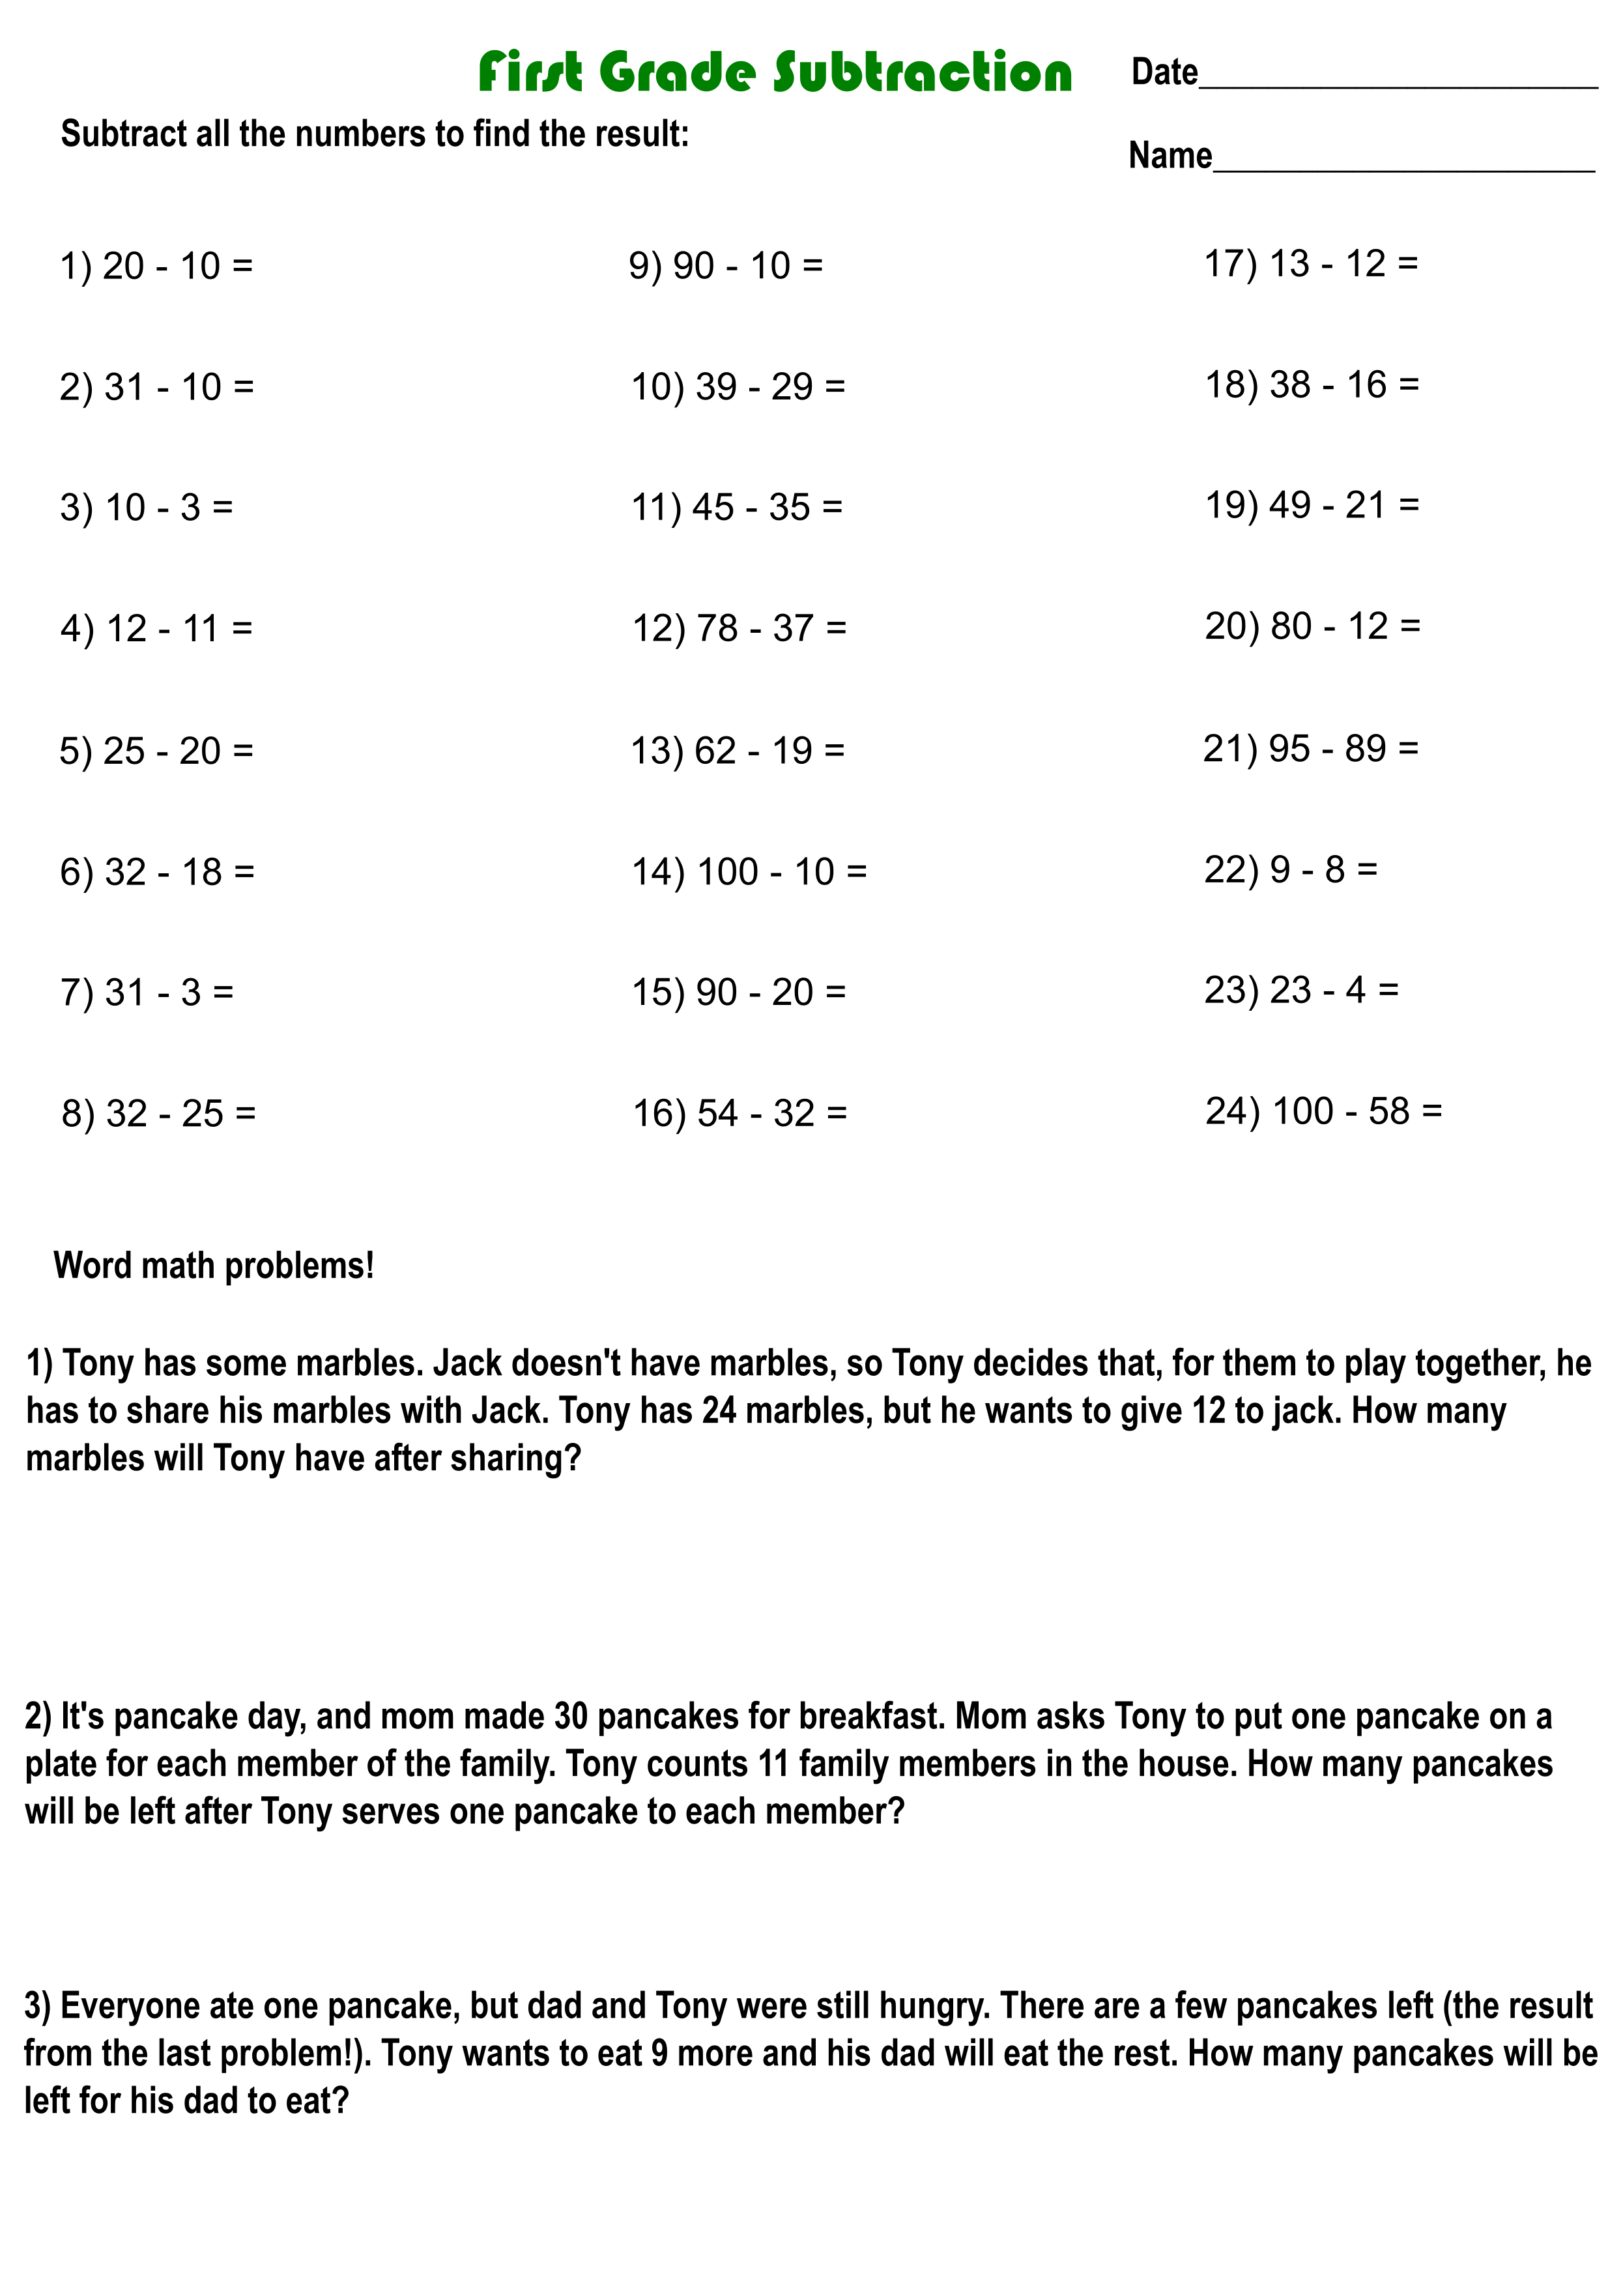 medium resolution of Printable 1st grade math worksheets with answer sheet (PDF) -  Printerfriend.ly